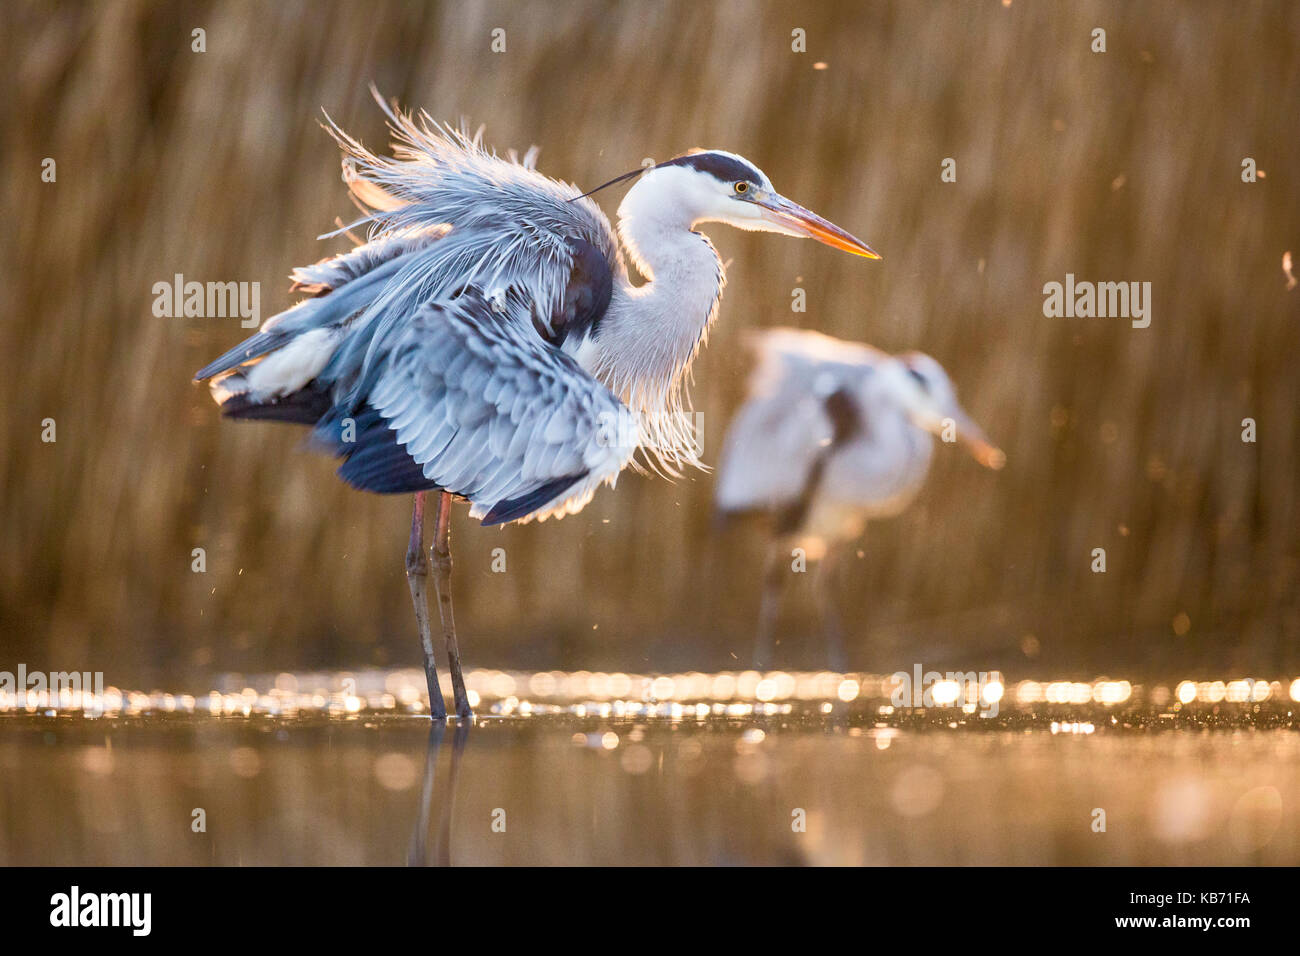 Grey Herons (Ardea cinerea) preening in late afternoon light, Hungary, Bacs-kiskun, Kiskunsagi National Park - Stock Image